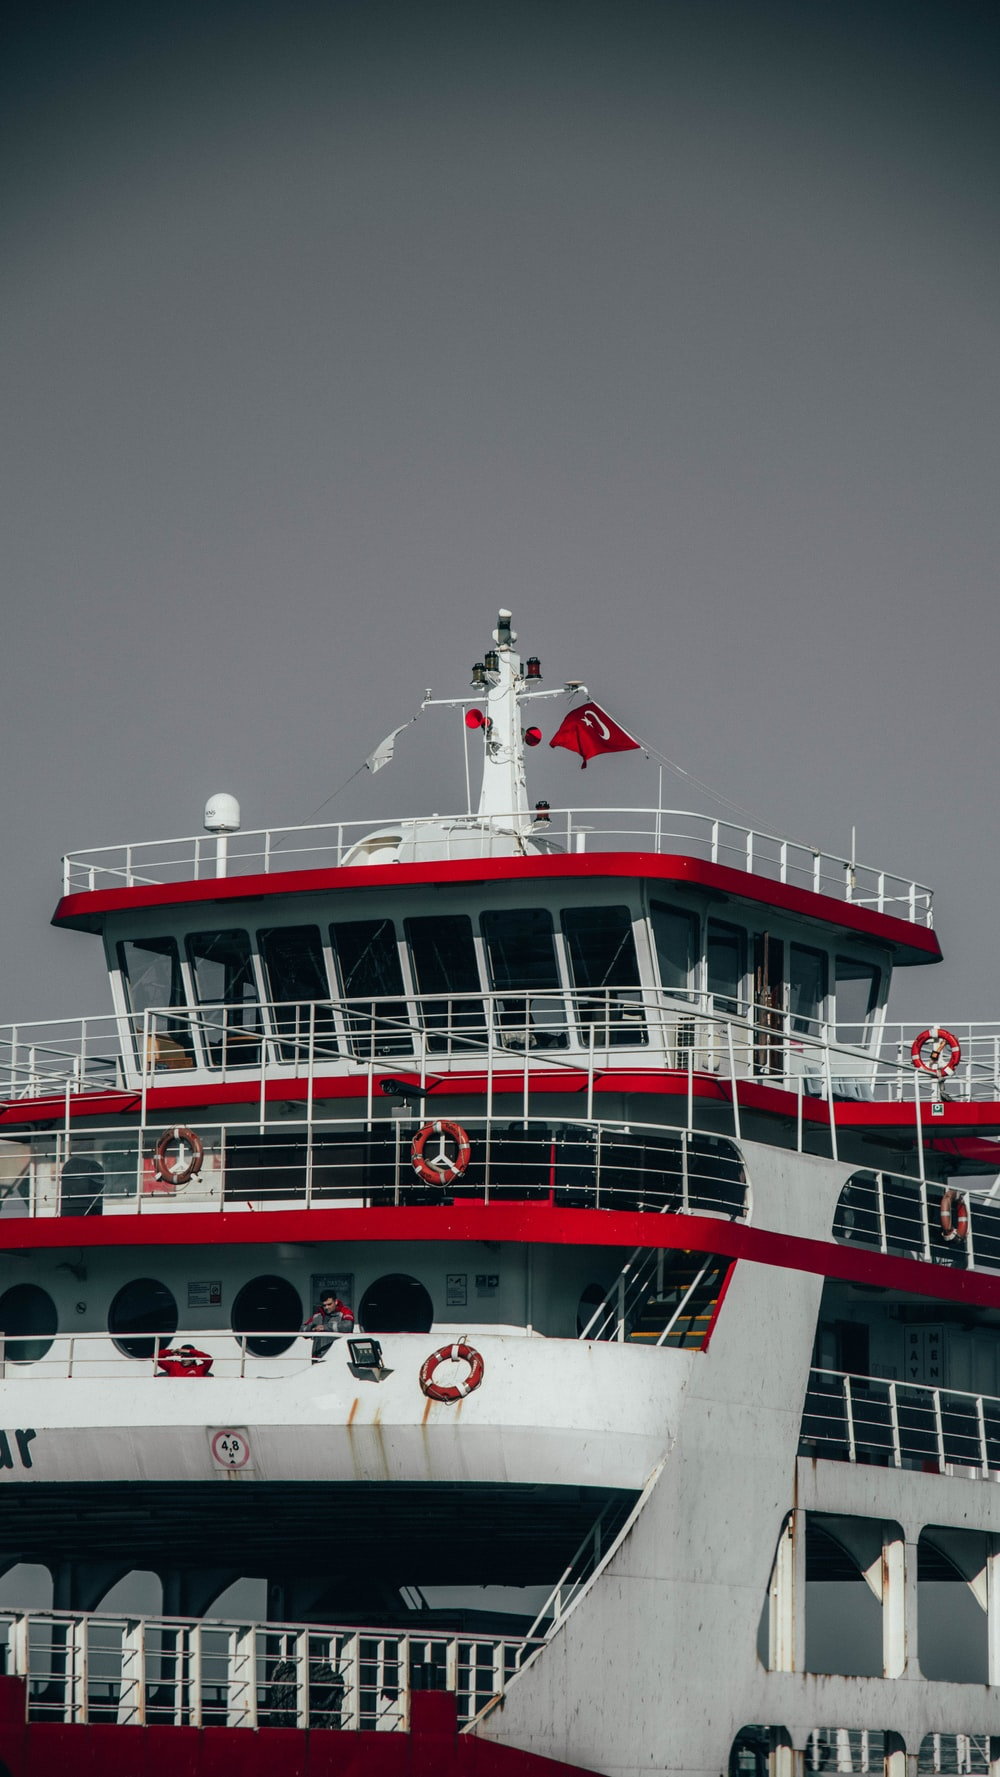 white and red ship on sea